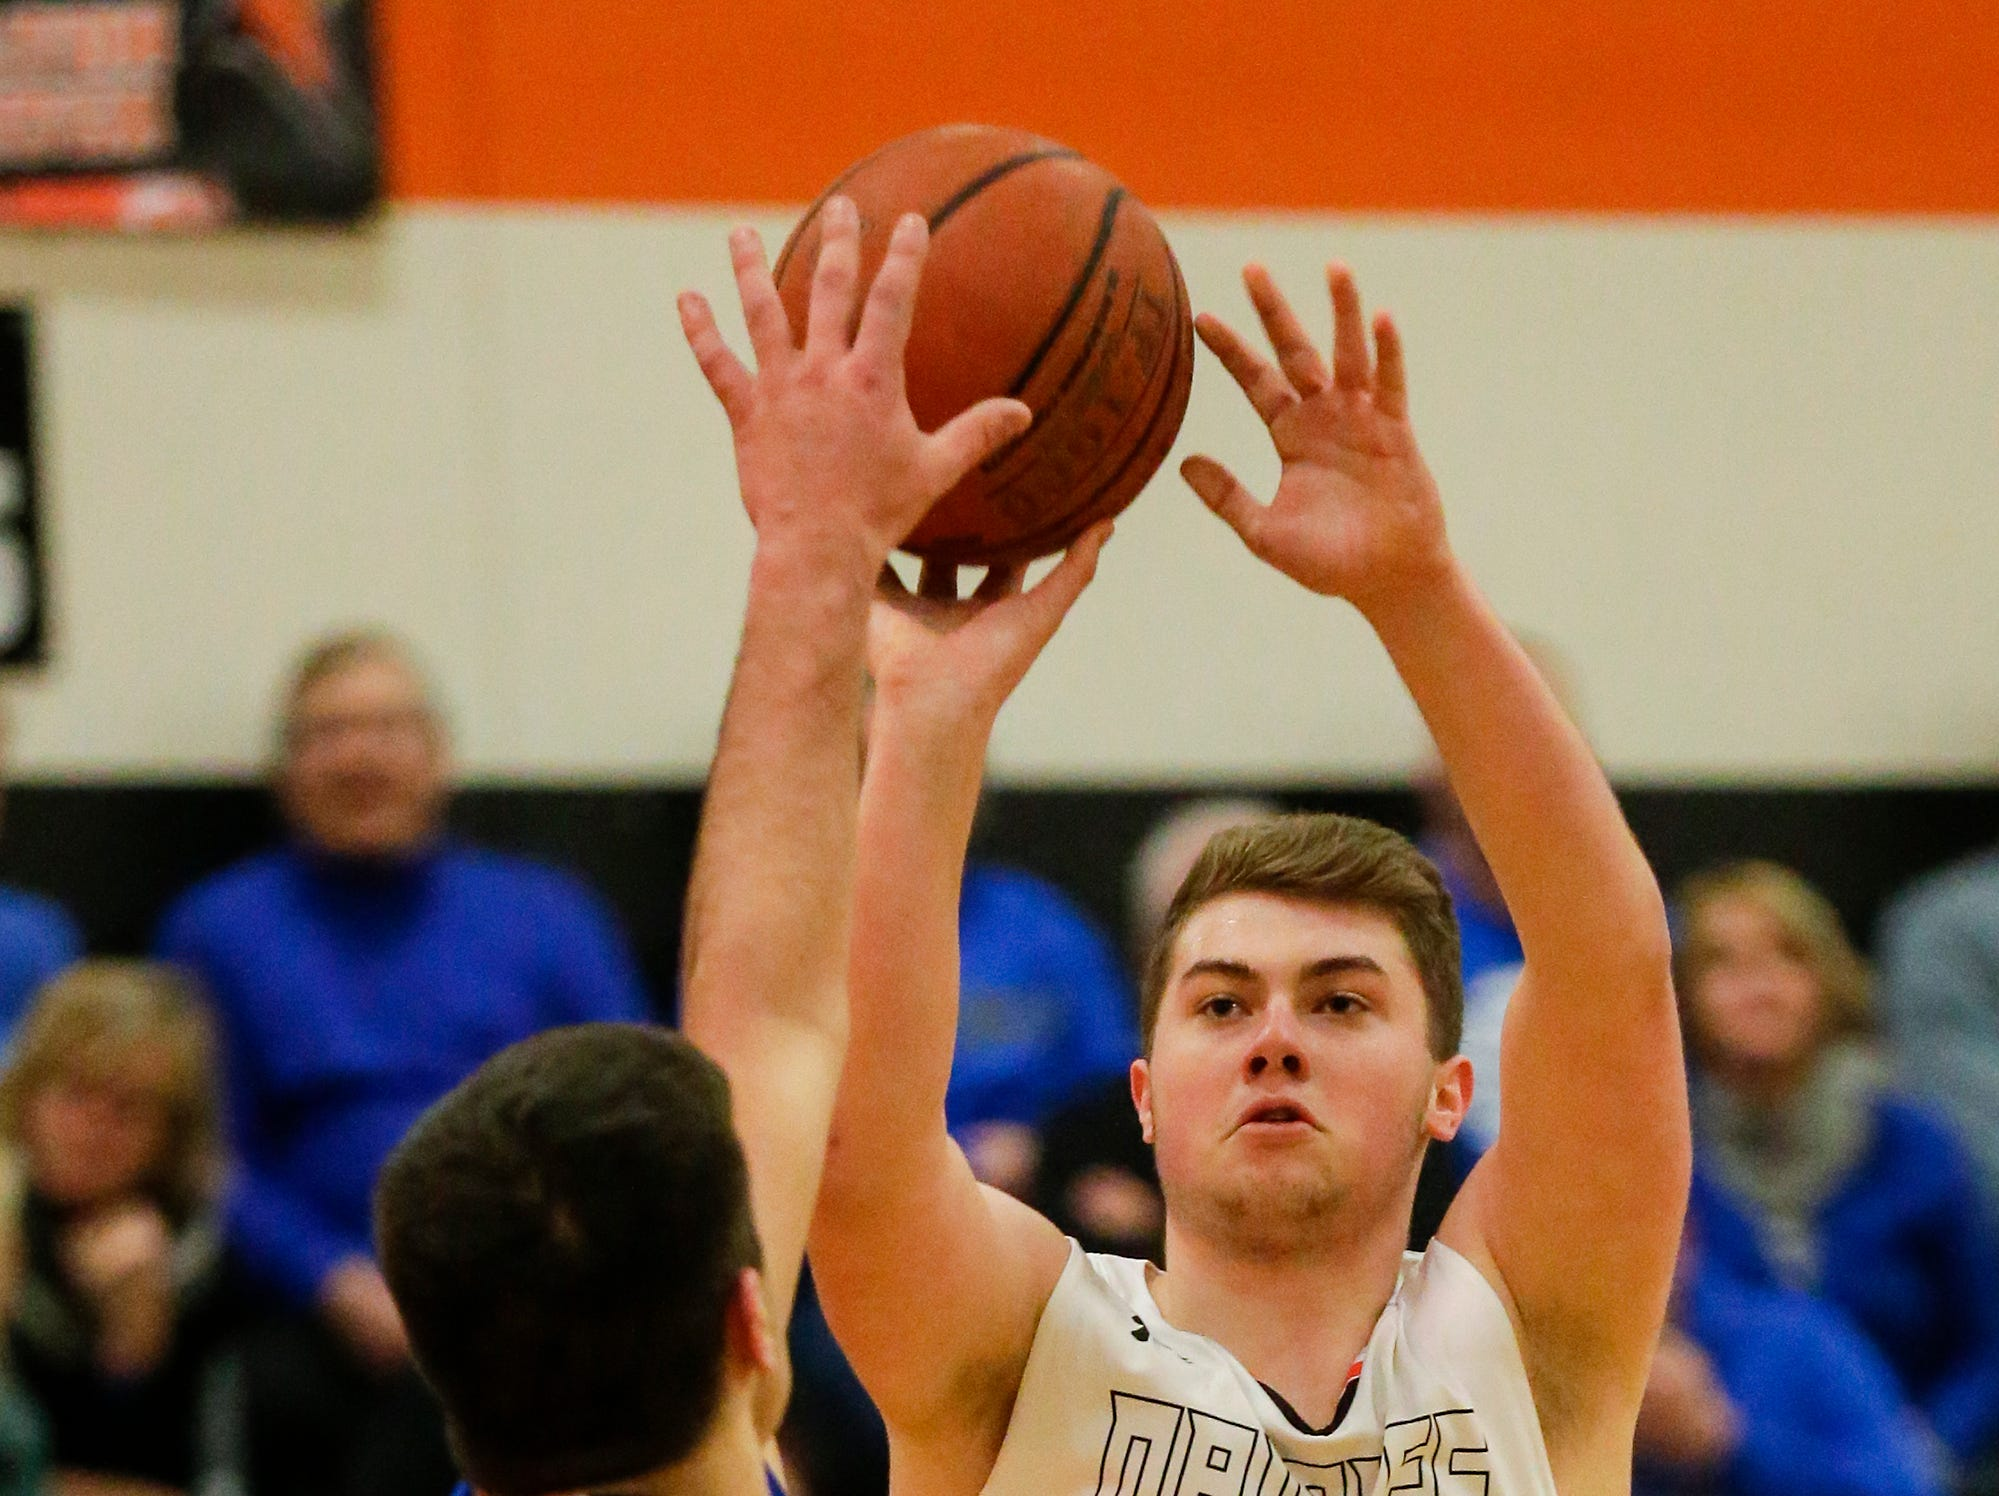 North Fond du Lac High School boys basketball's Mathias Gilbertson shoots a basket over St. Mary's Springs Academy's Justin Ditter during their game Friday, December 7, 2018 in North Fond du Lac, Wisconsin. Doug Raflik/USA TODAY NETWORK-Wisconsin